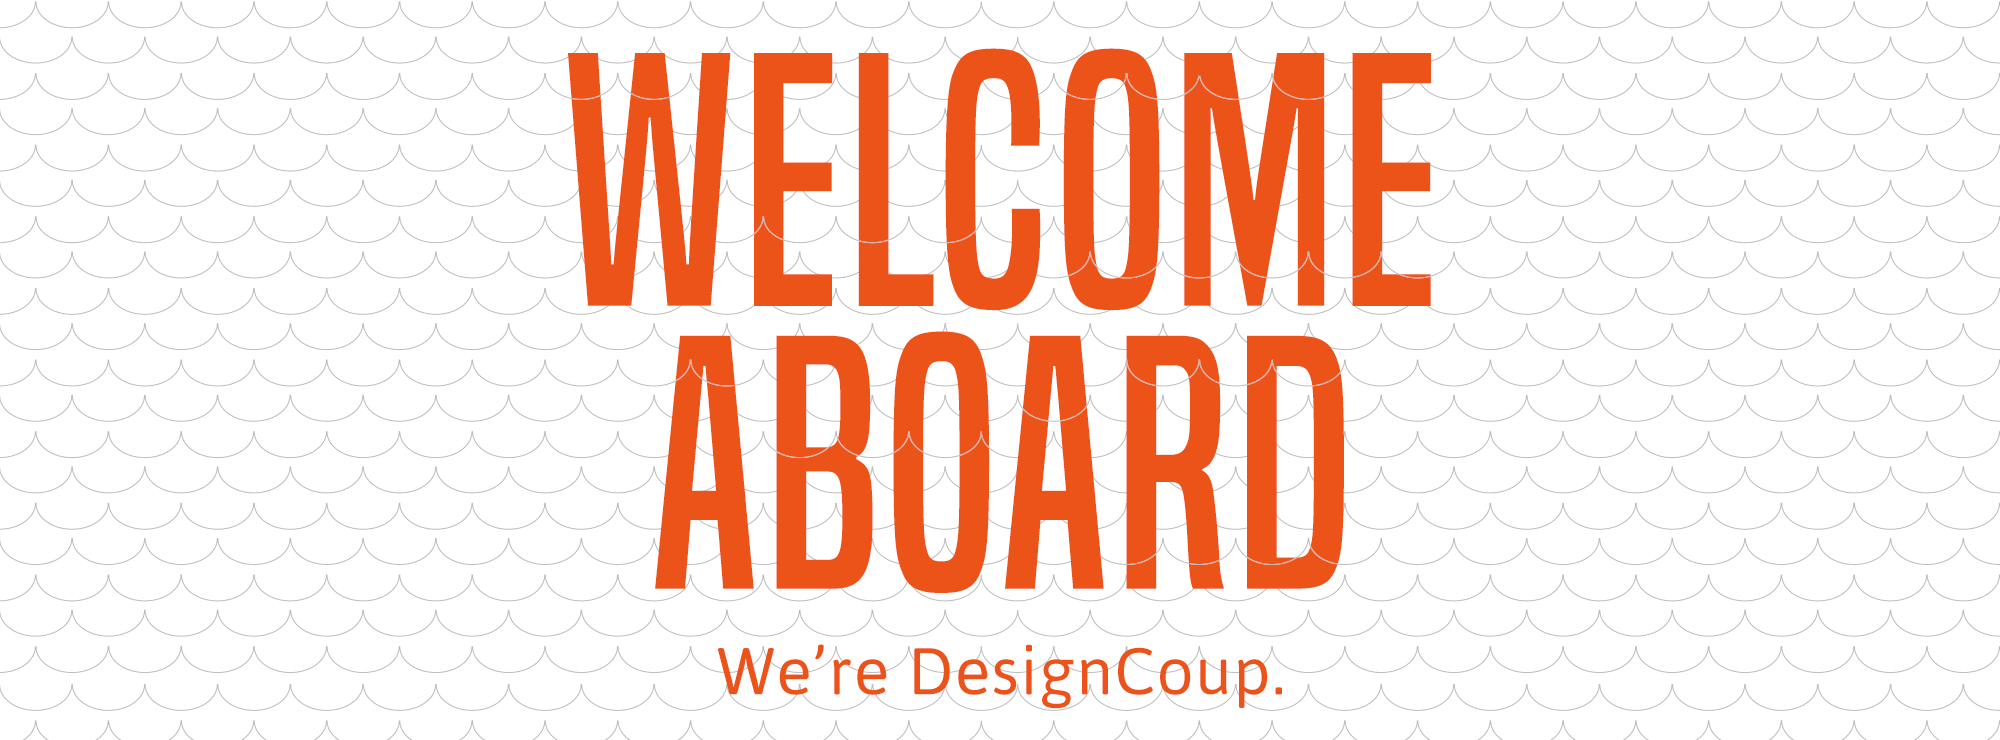 Welcome Aboard. We're DesignCoup